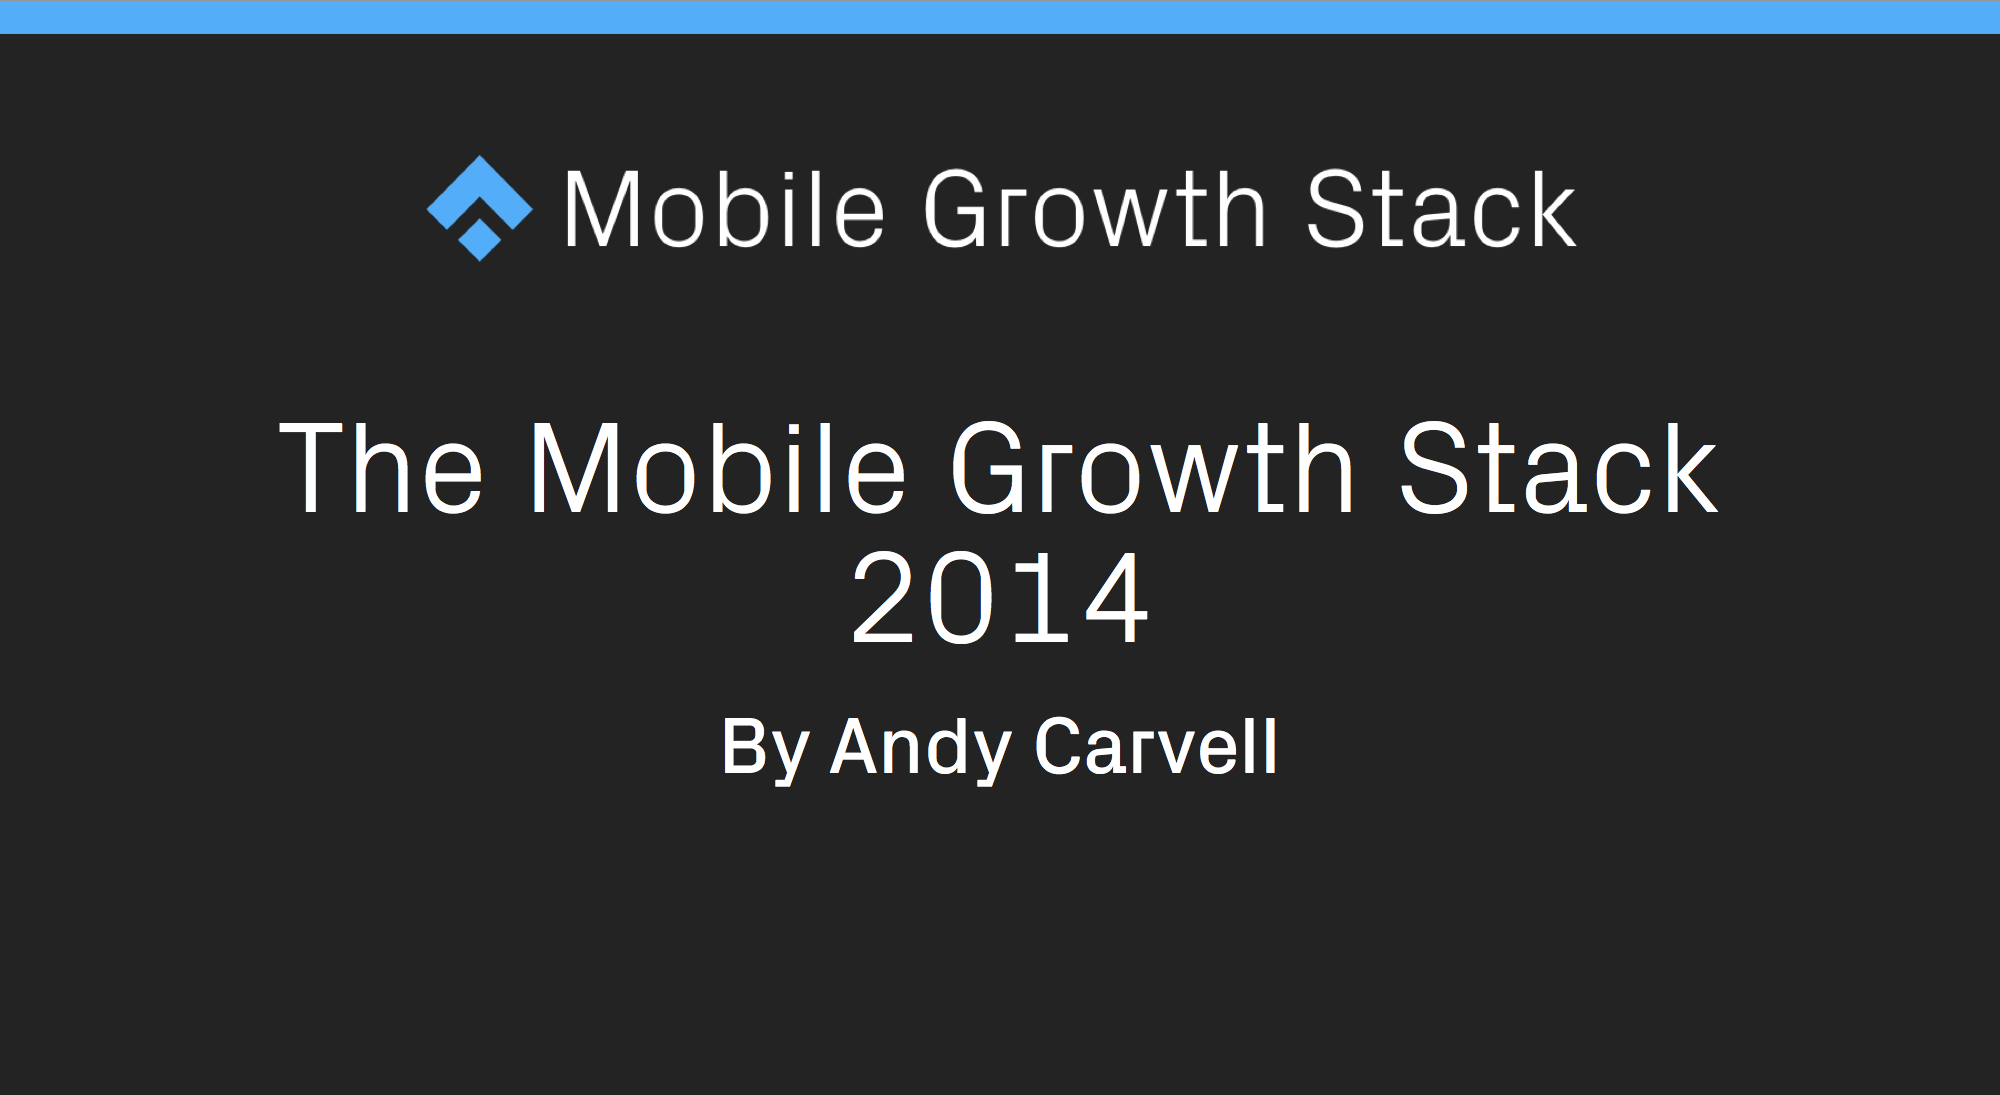 the mobile growth stack 2014